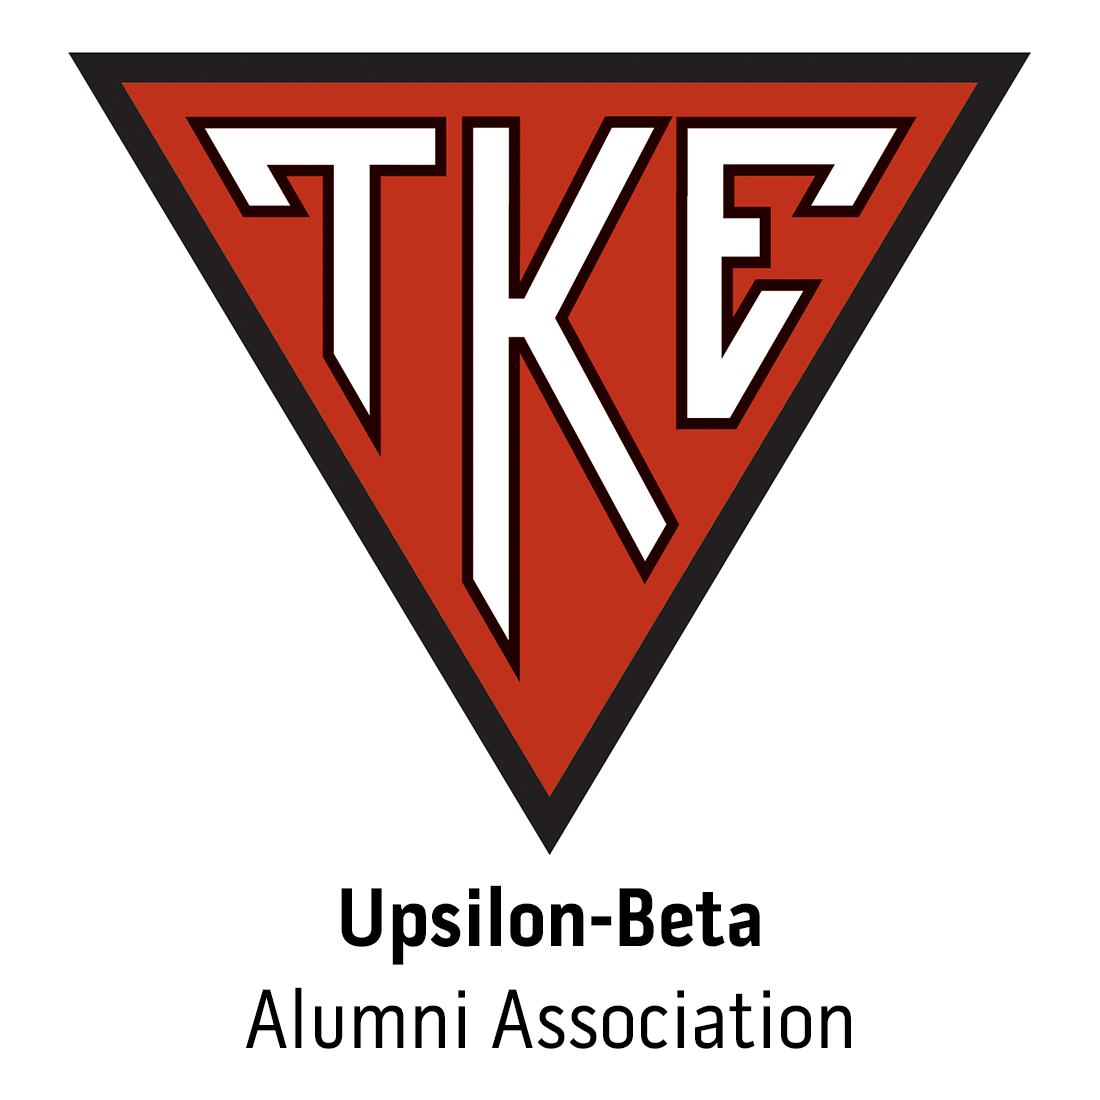 Upsilon-Beta Alumni Association at California State University, Northridge